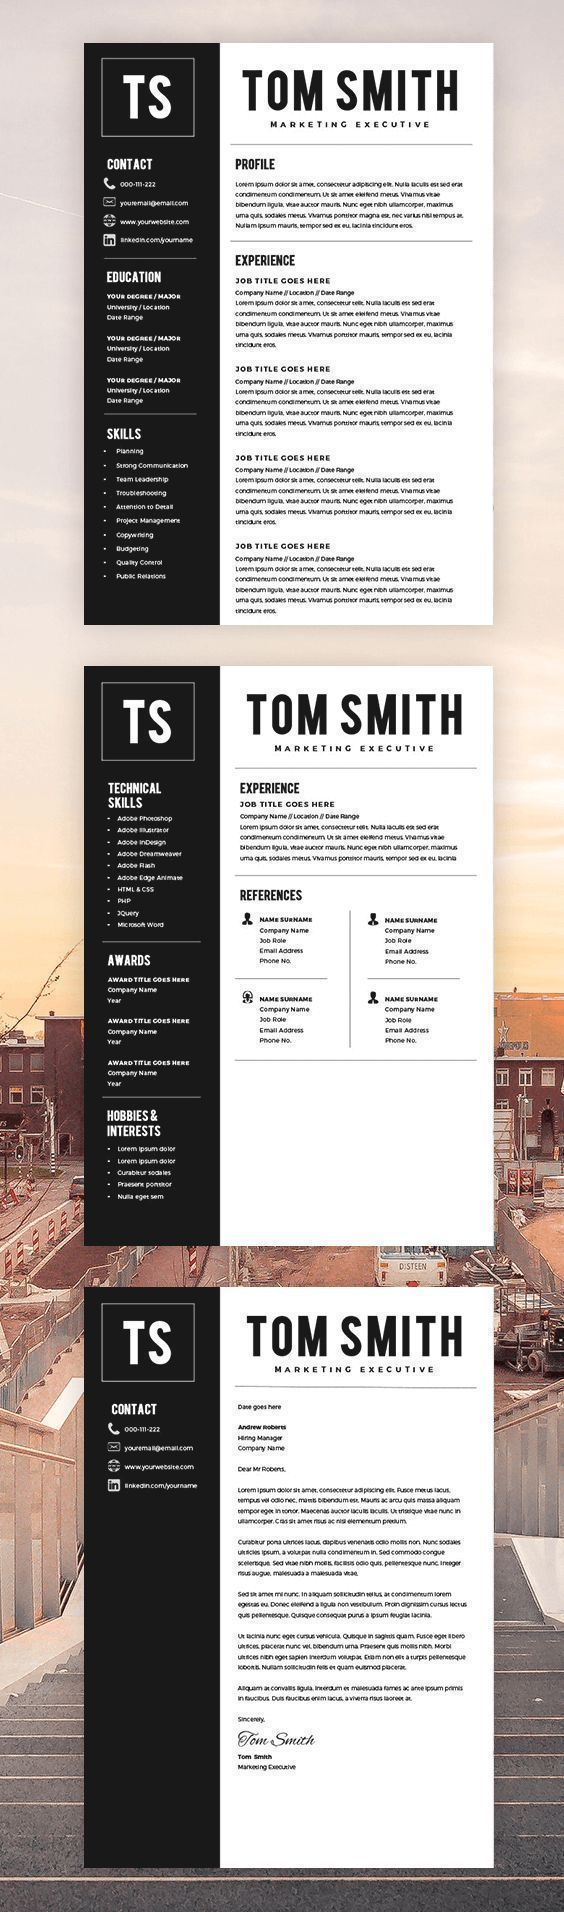 Resume Cv Templates Free Download%0A Show Google Earth Map